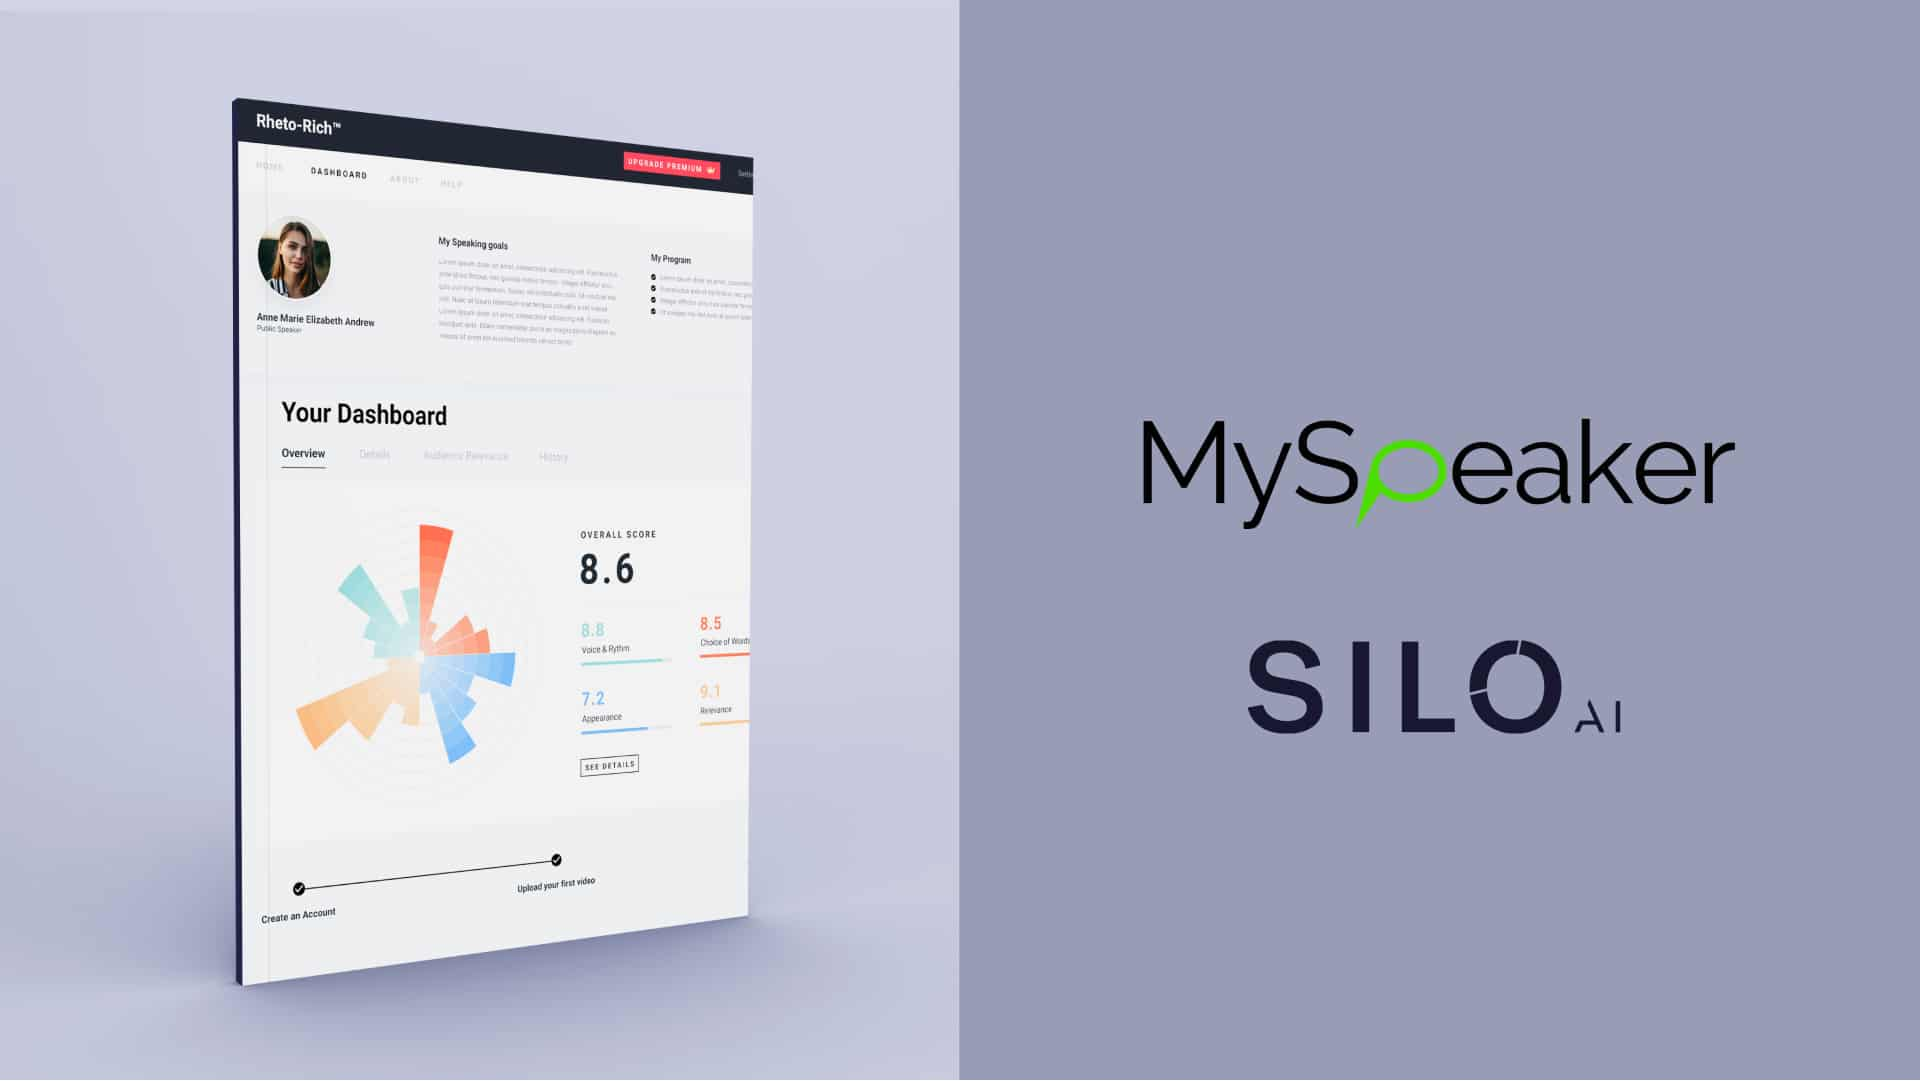 MySpeaker and Silo AI set out to help people become better speakers through personal AI-driven feedback